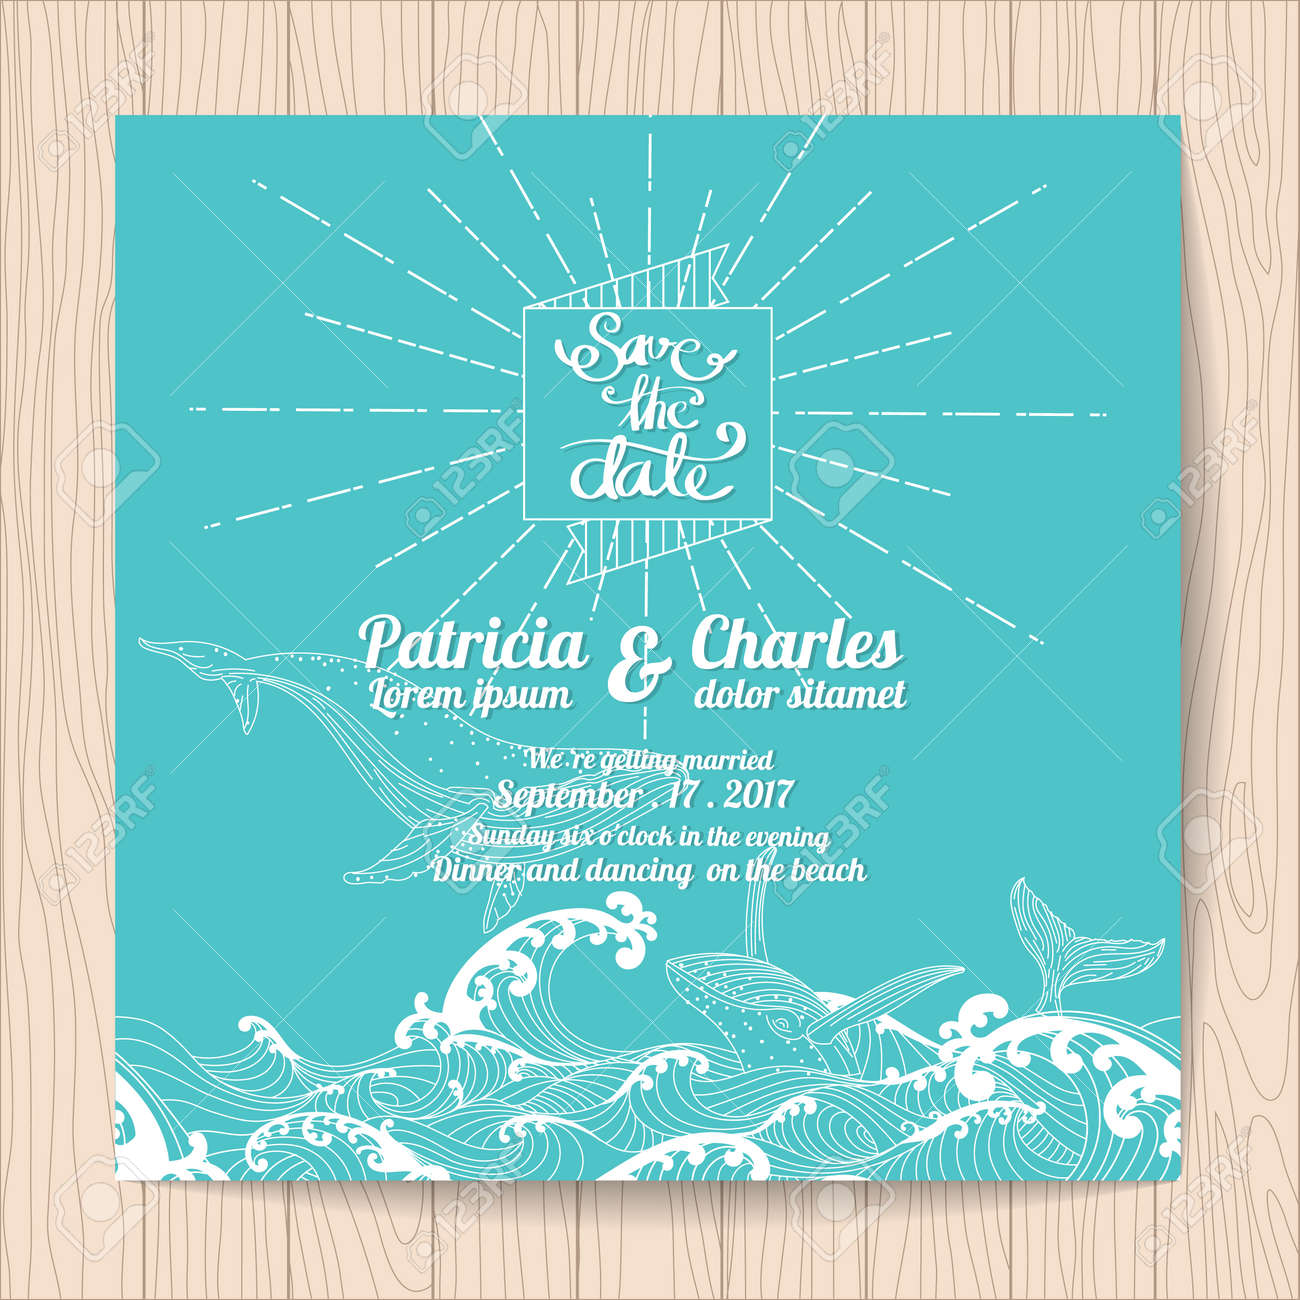 Wedding Invitation Card Templates Ocean Theme Royalty Free Cliparts